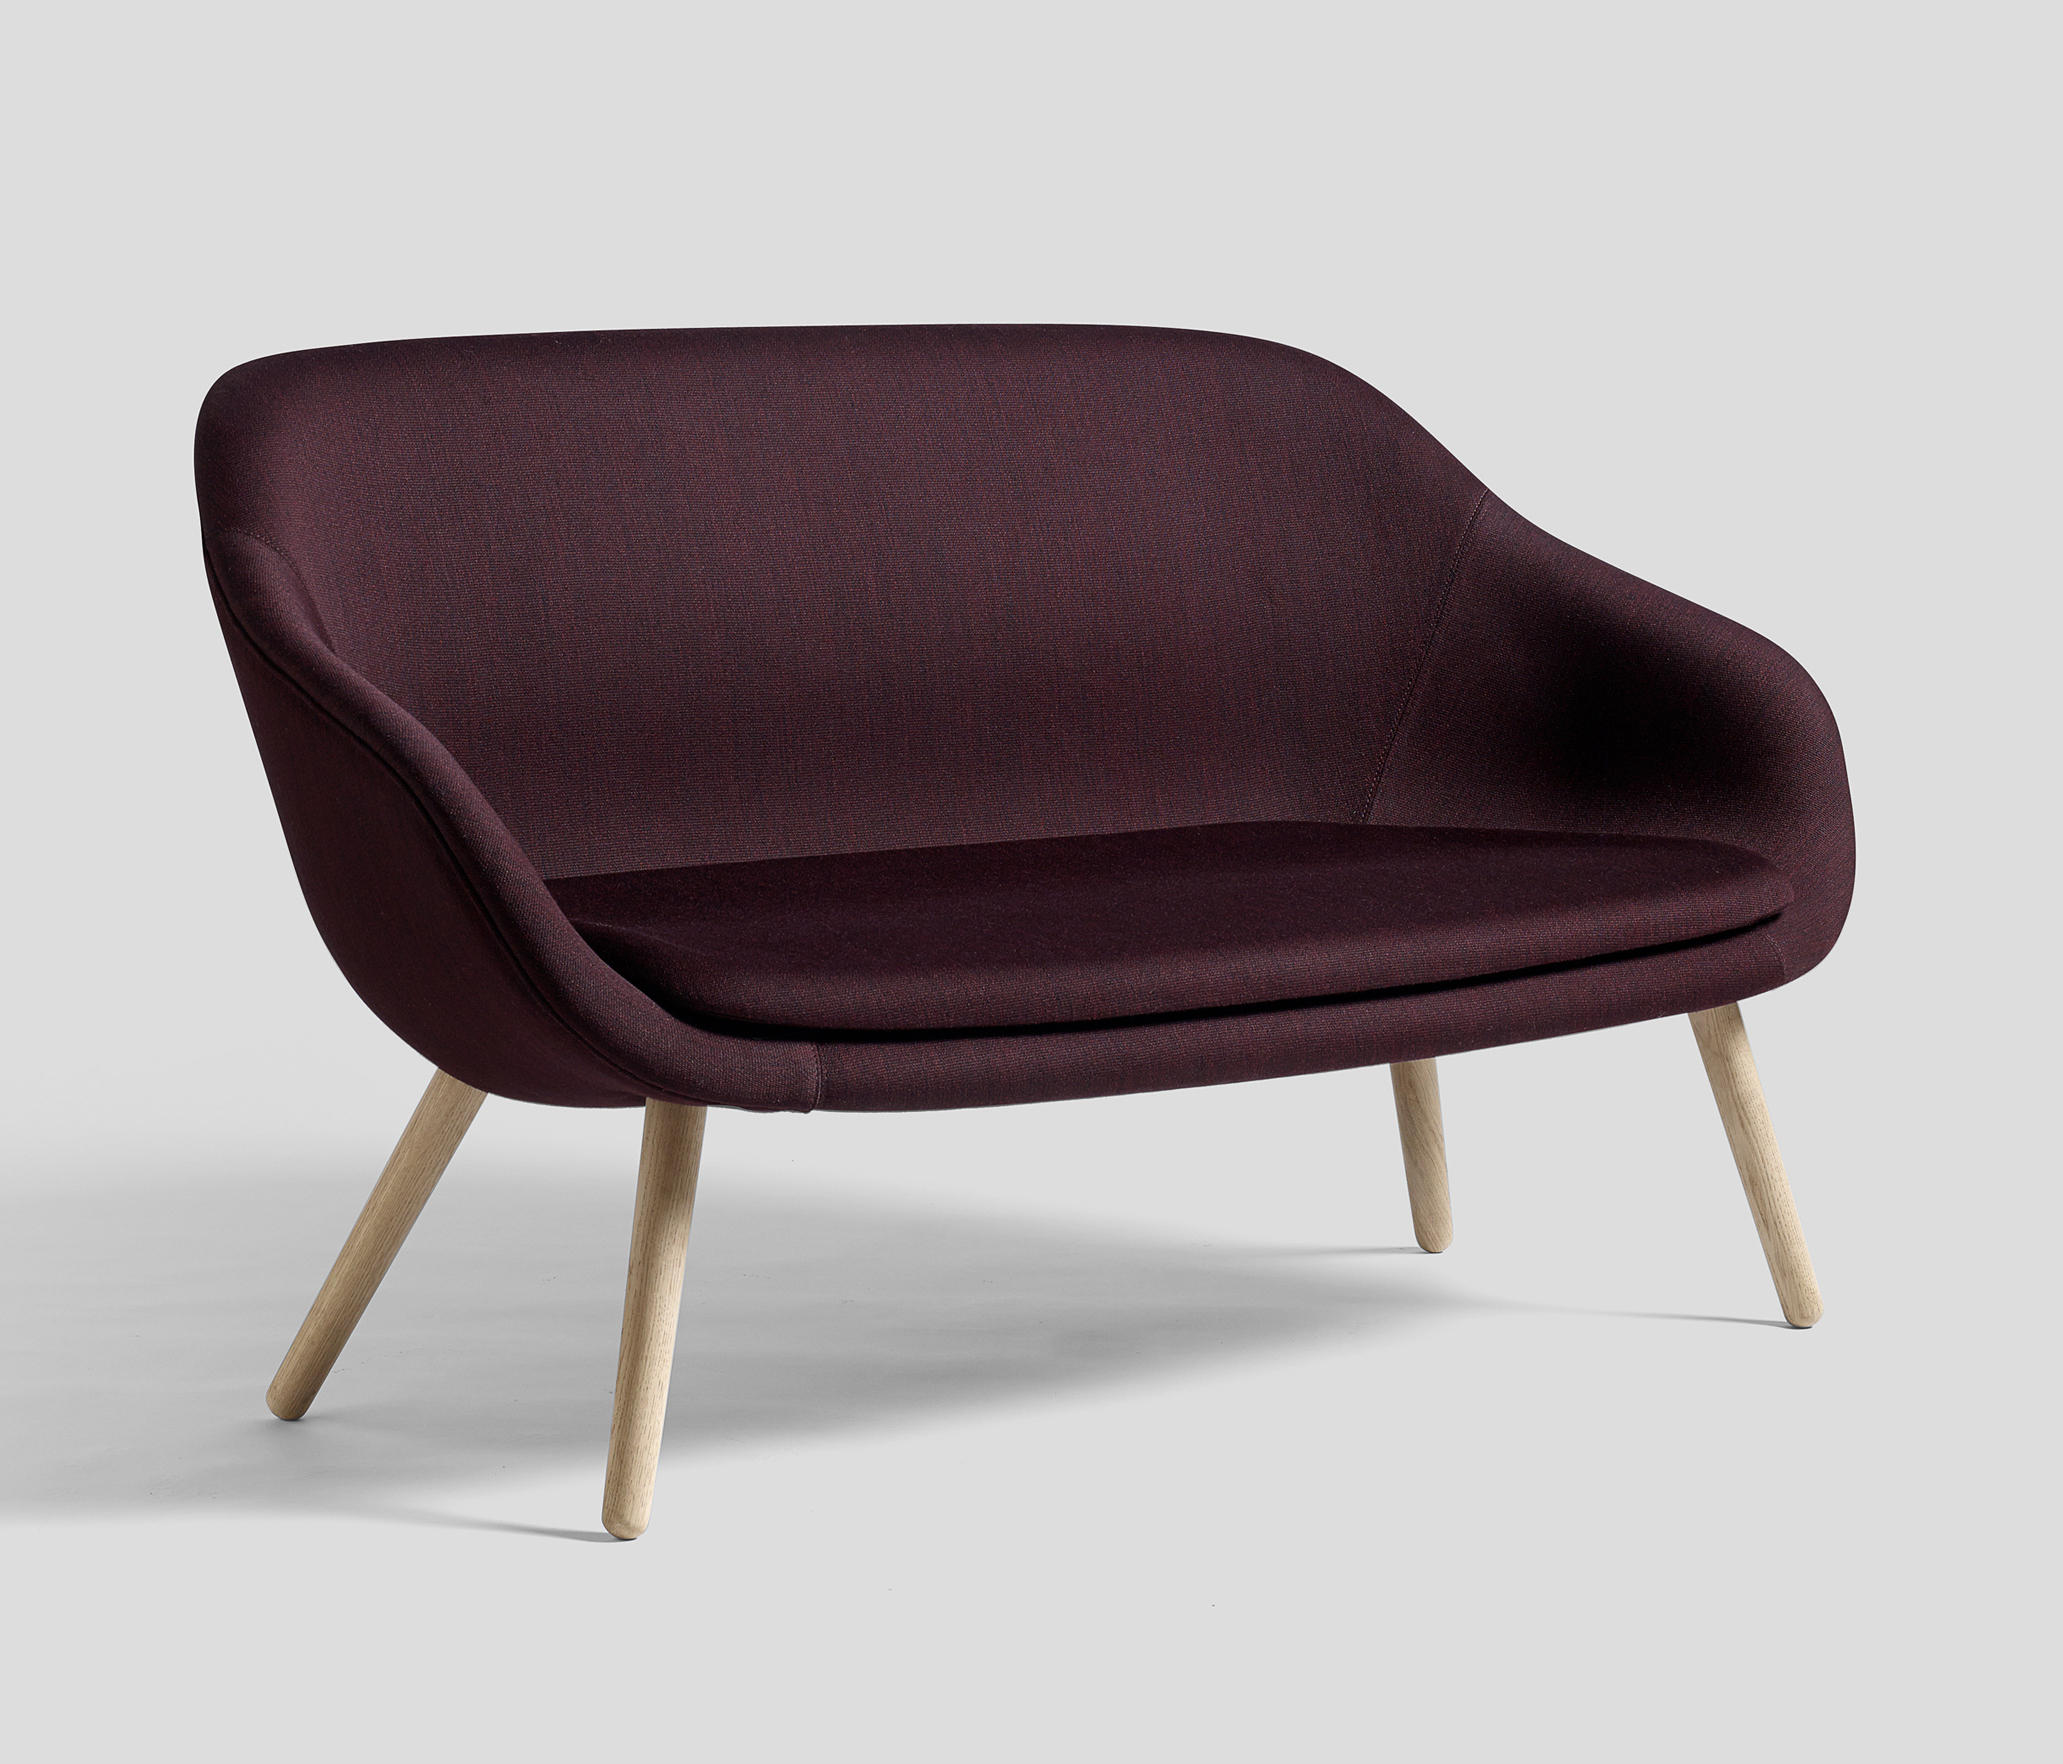 Moebel-as.de About A Lounge Aal Sofa Sofas From Hay Architonic